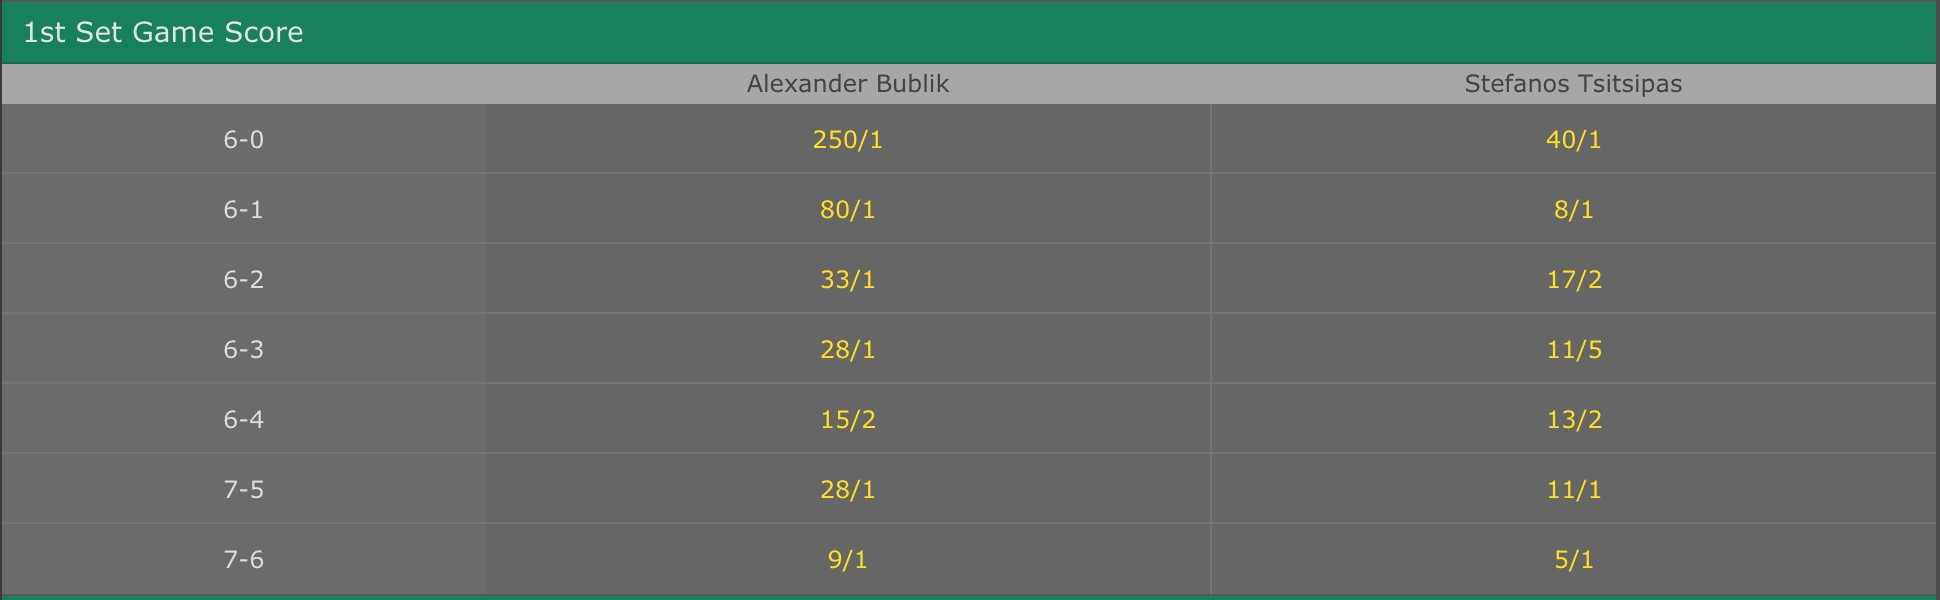 bet365 odds for 1 set winner of the game between Opelka vs Raonic